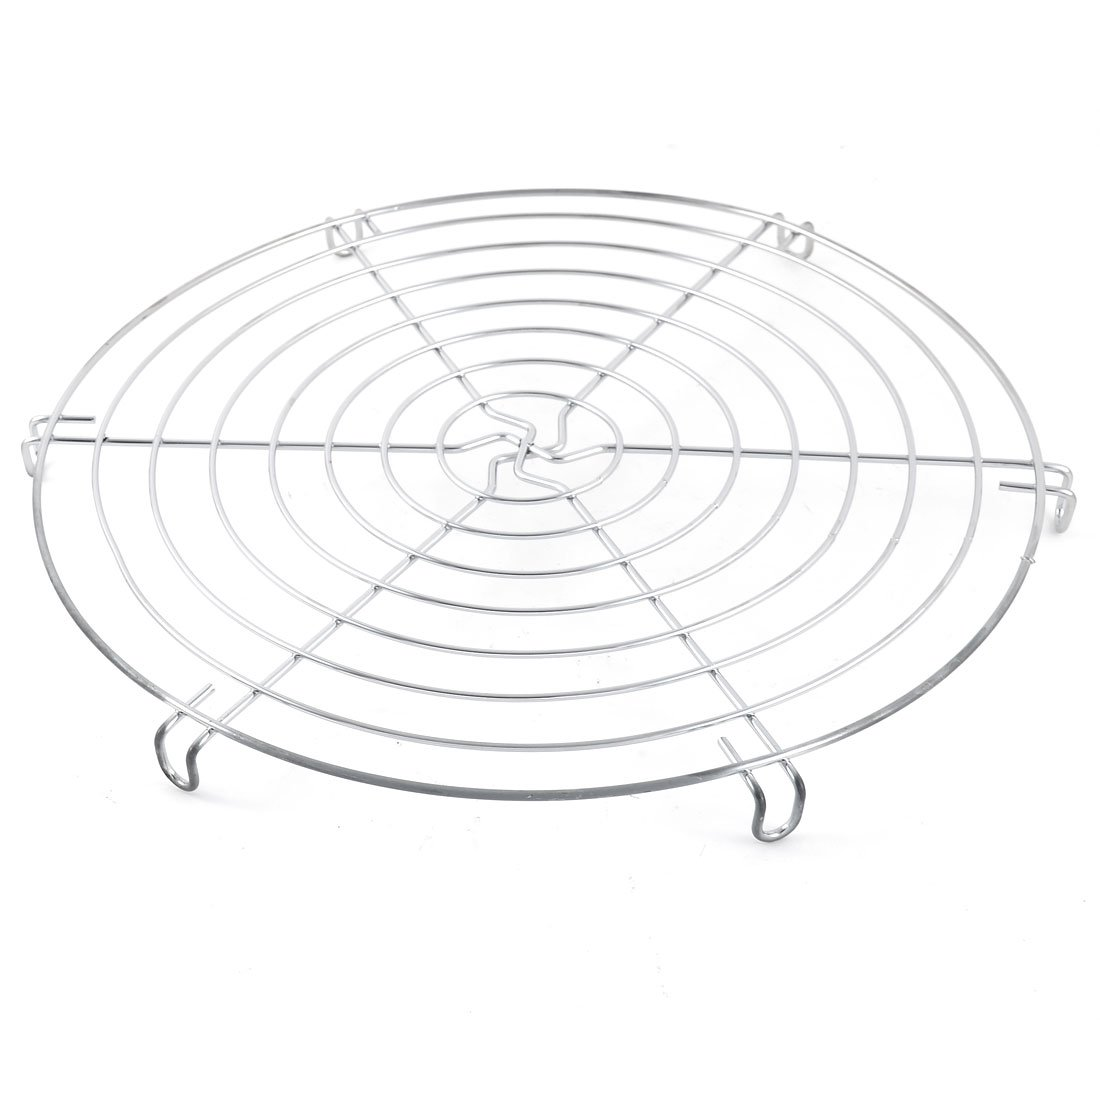 uxcell Metal Round Shape Cake Fondant Muffin Cookie Pancake Pie Cooling Rack 30cm Silver Tone a16030700ux0344